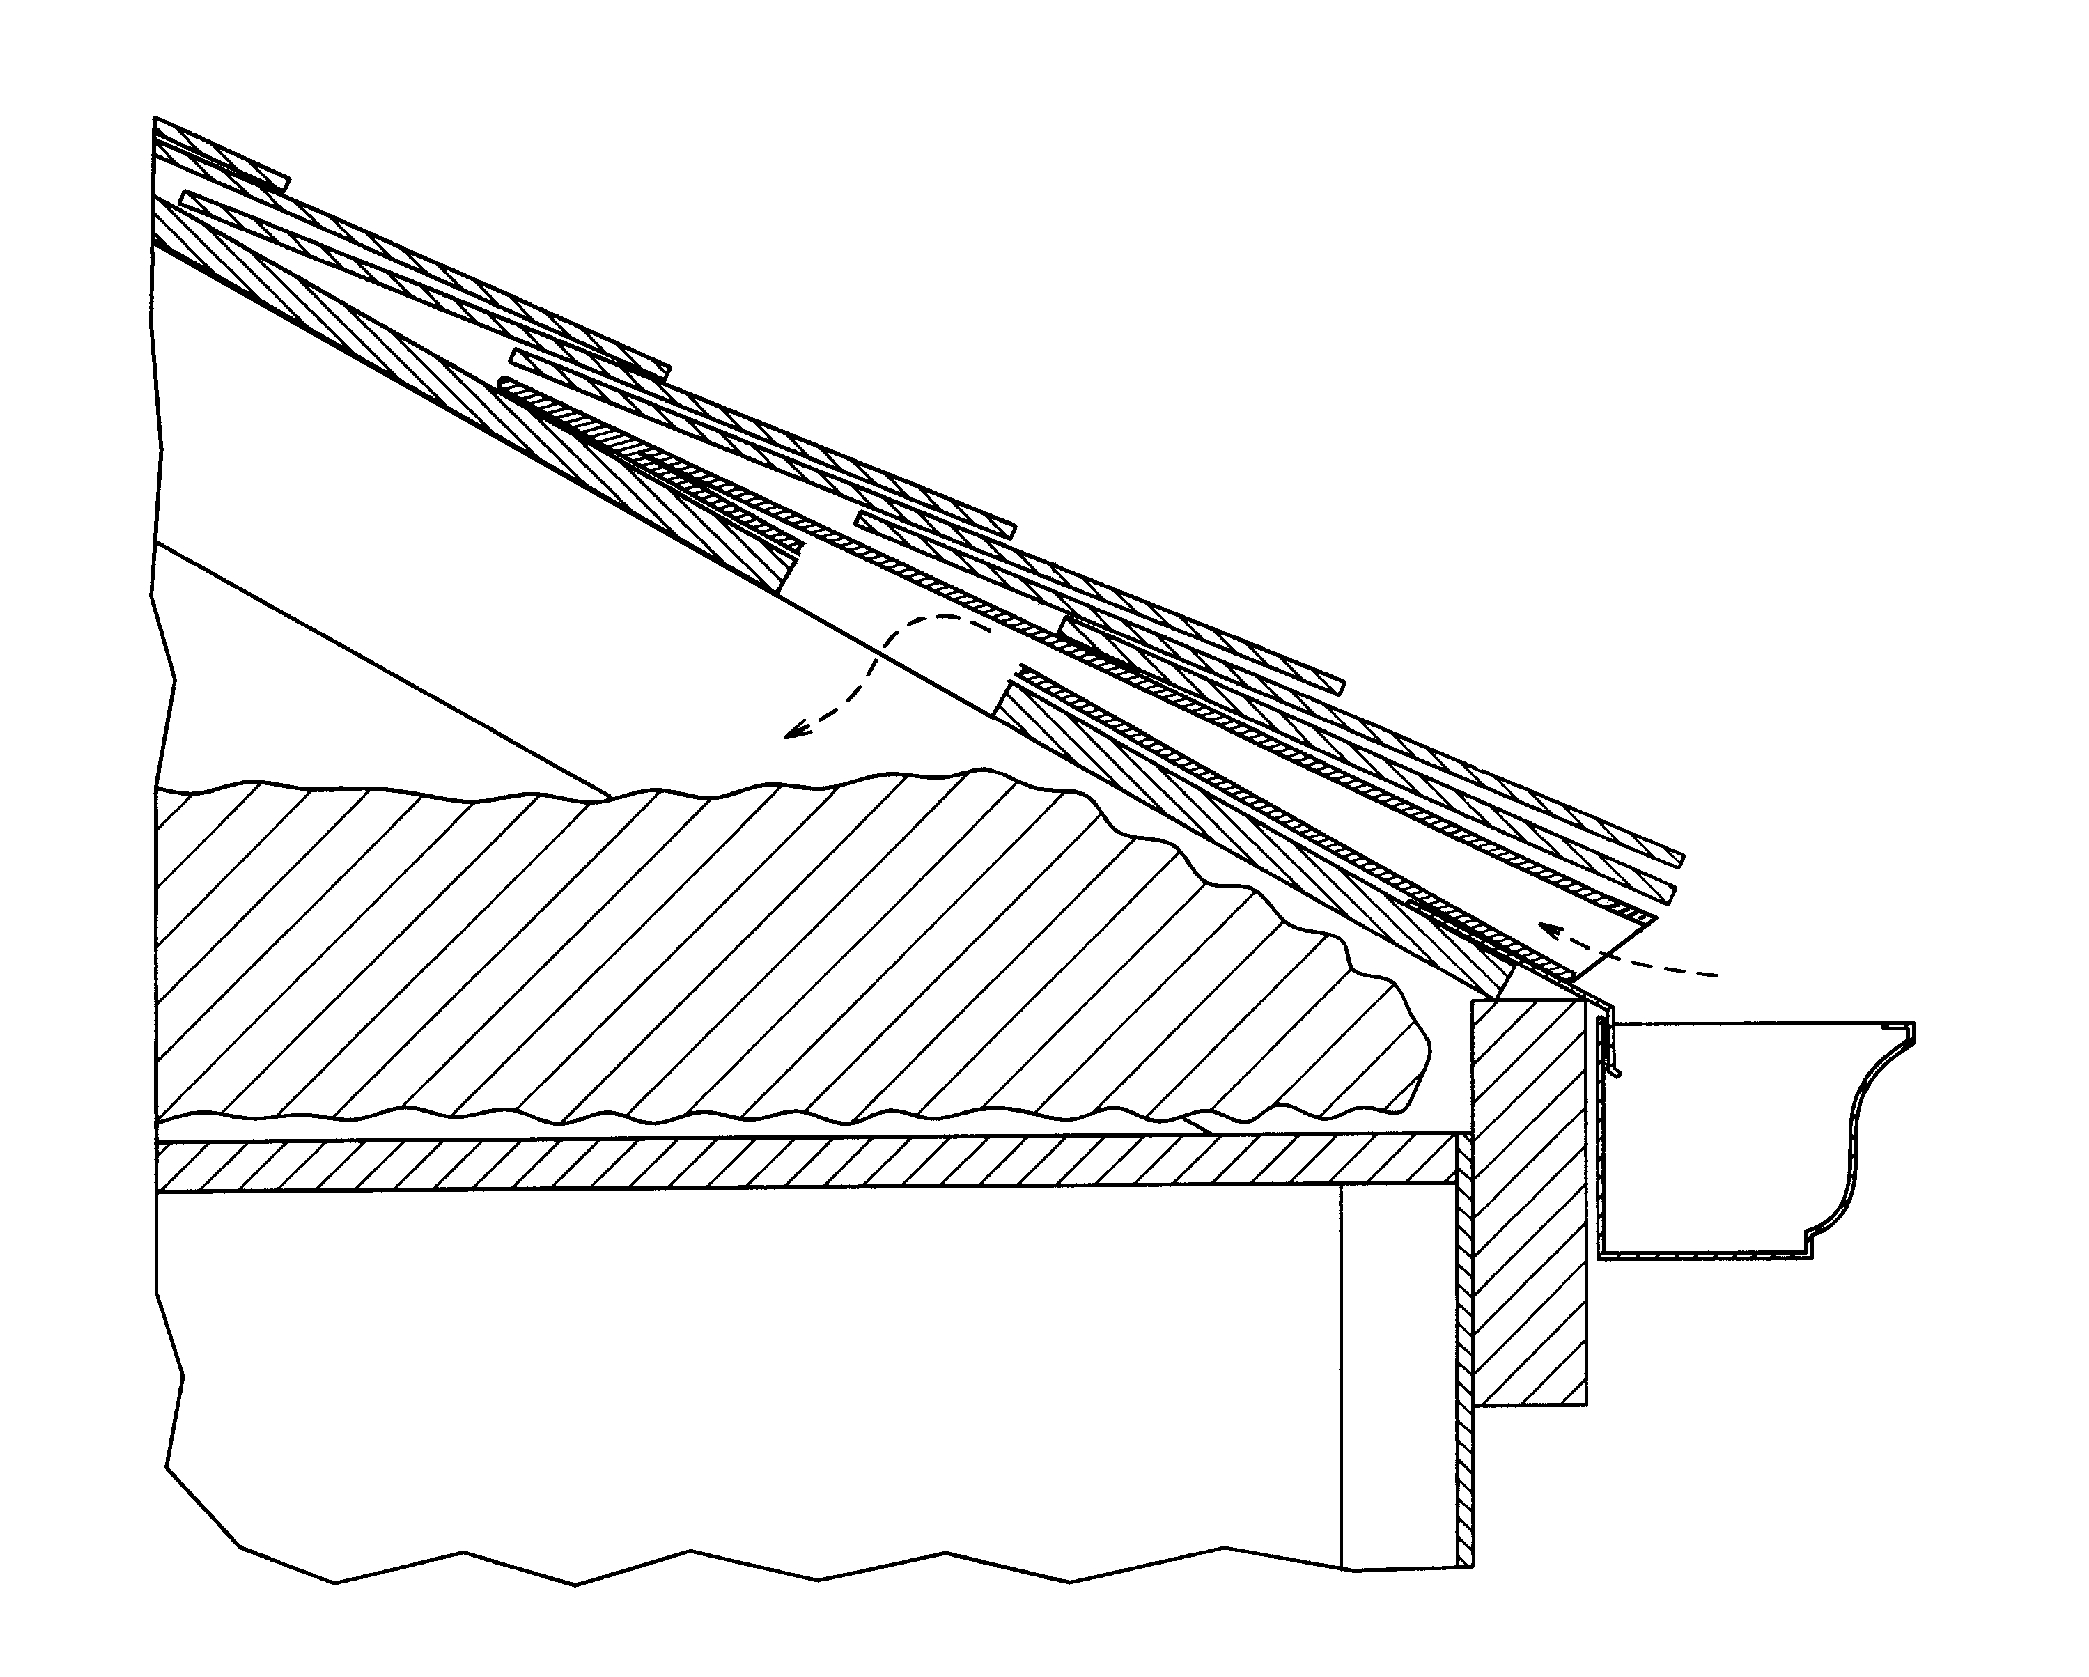 Attic Ventilation Without Soffit Vents Askaroofer within proportions 2089 X 1677